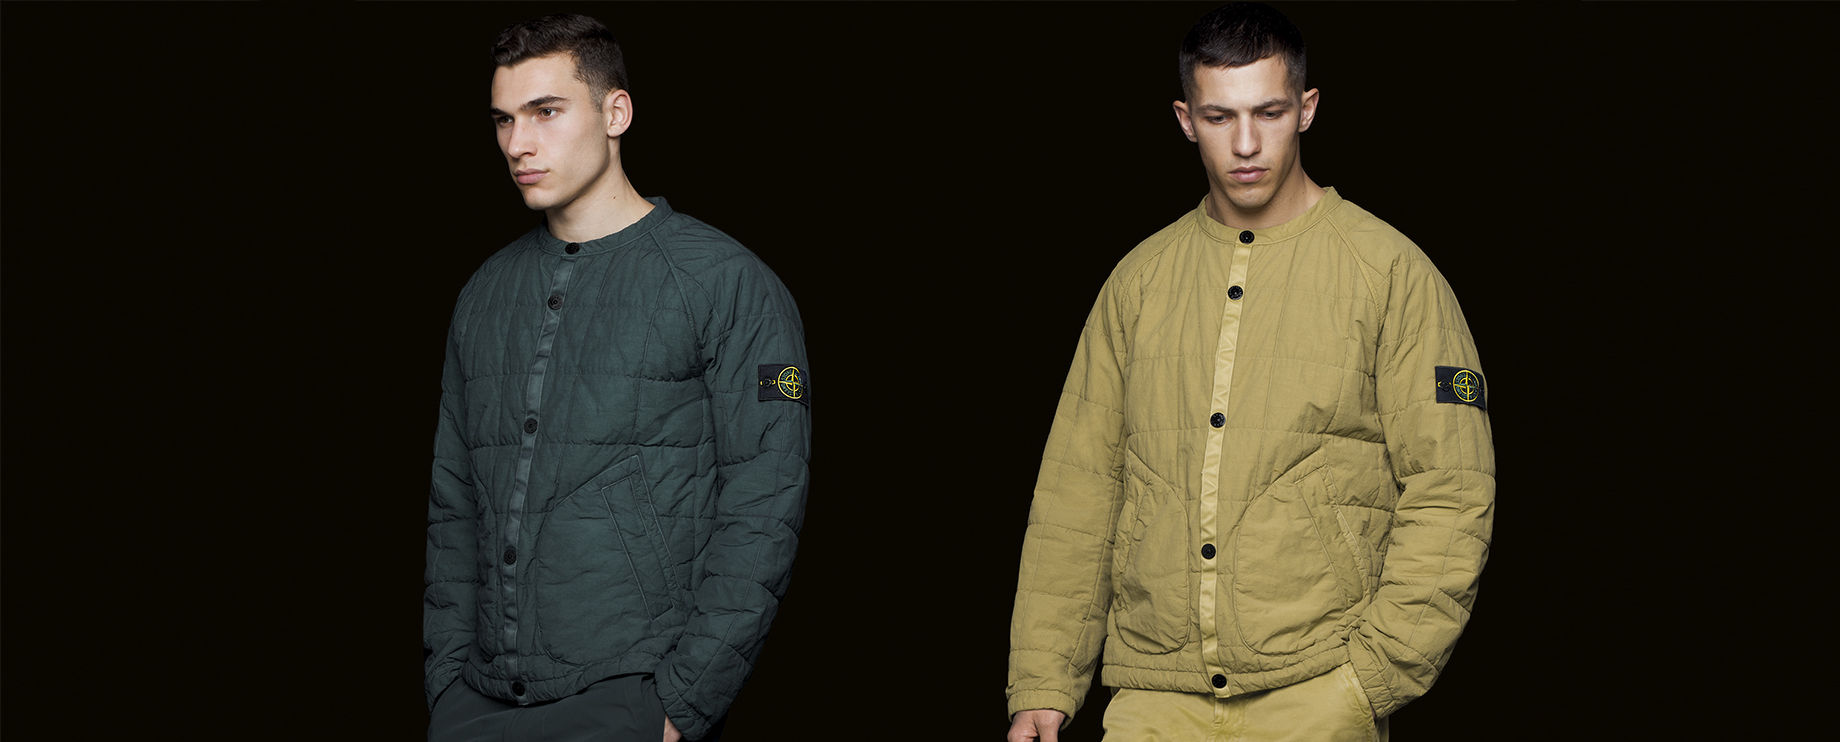 Two models wearing the same style bomber jacket, one in dark green and one in mustard yellow.